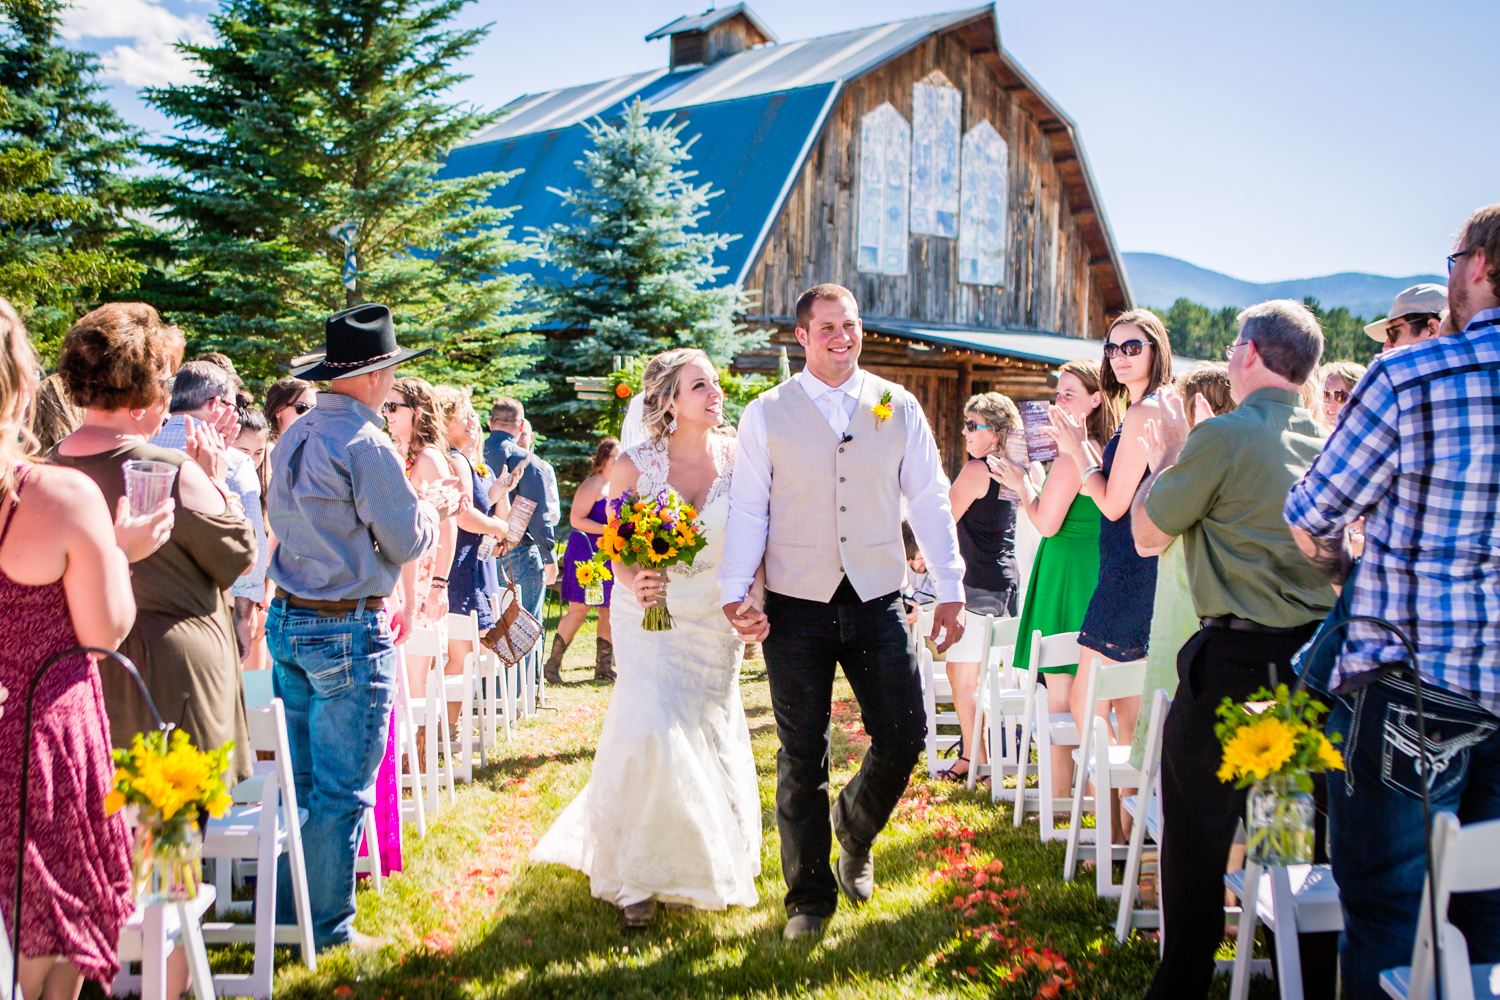 Wedding at The barn at Evergreen Memorial. Photographed by JMGant Photography.